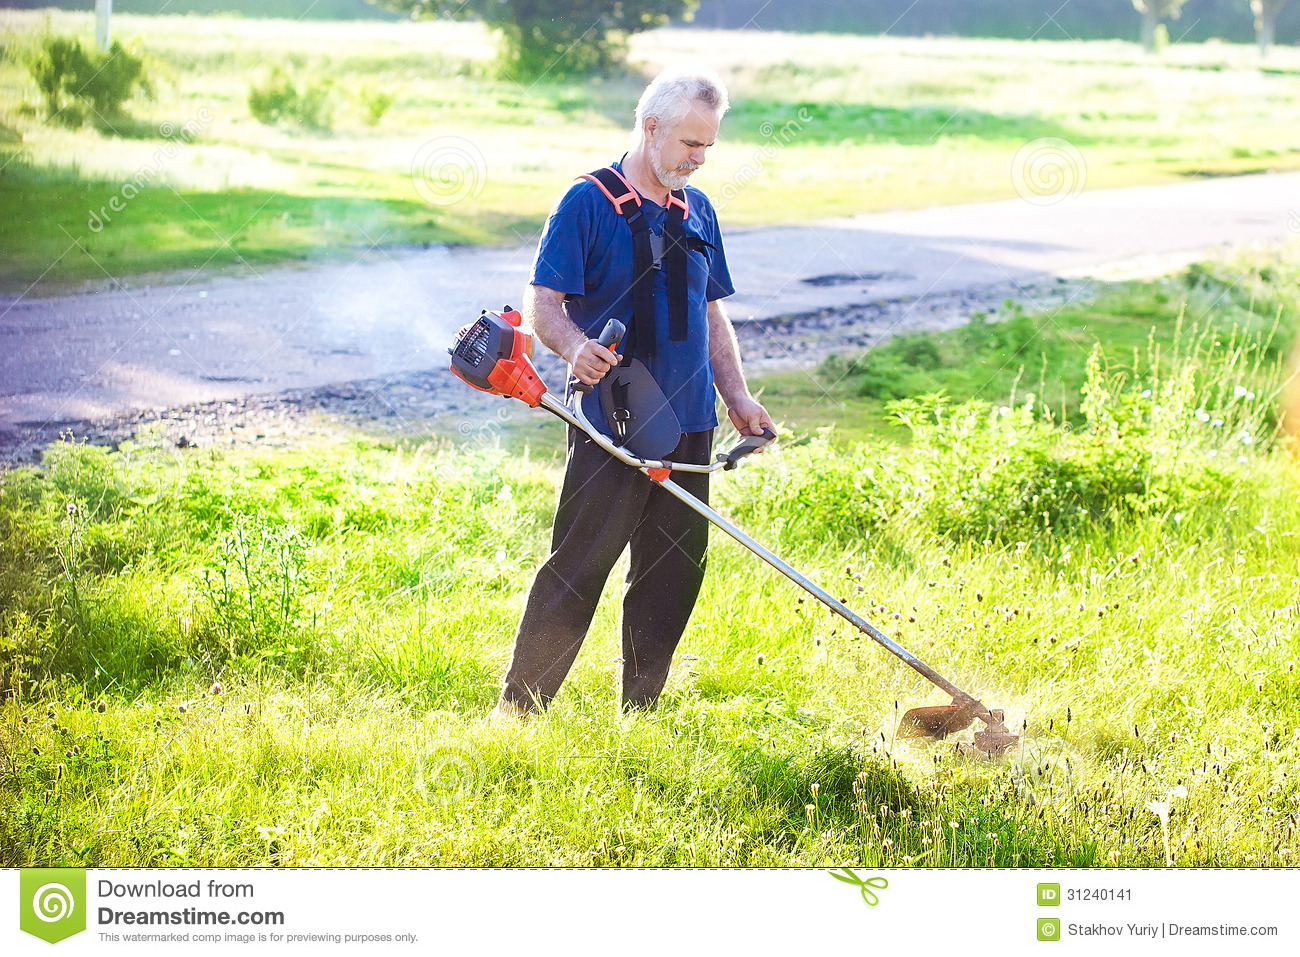 Senior Man With Lawn Mower Stock Image - Image: 31240141